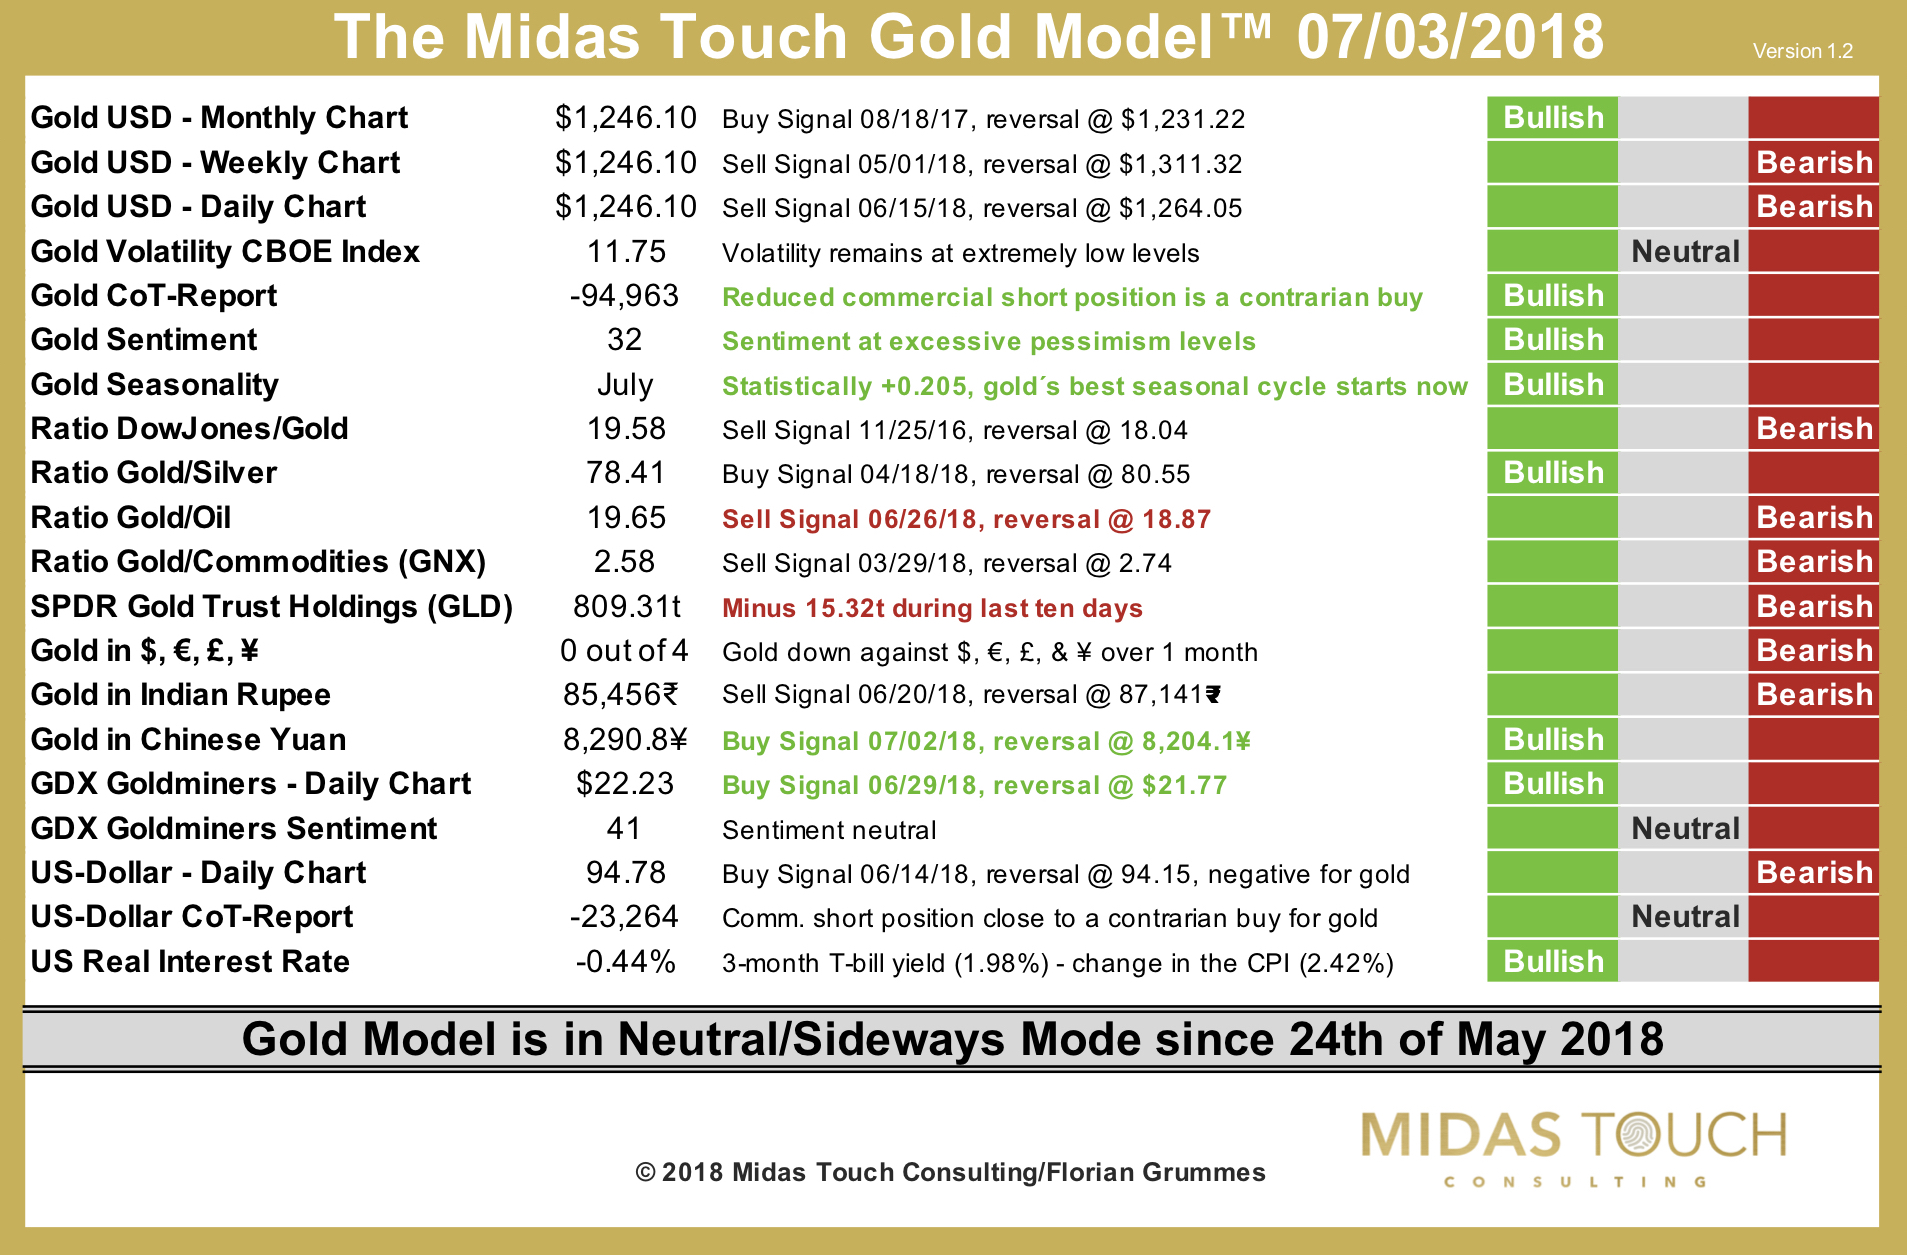 The Midas Touch Gold Model™ as of July 3rd, 2018